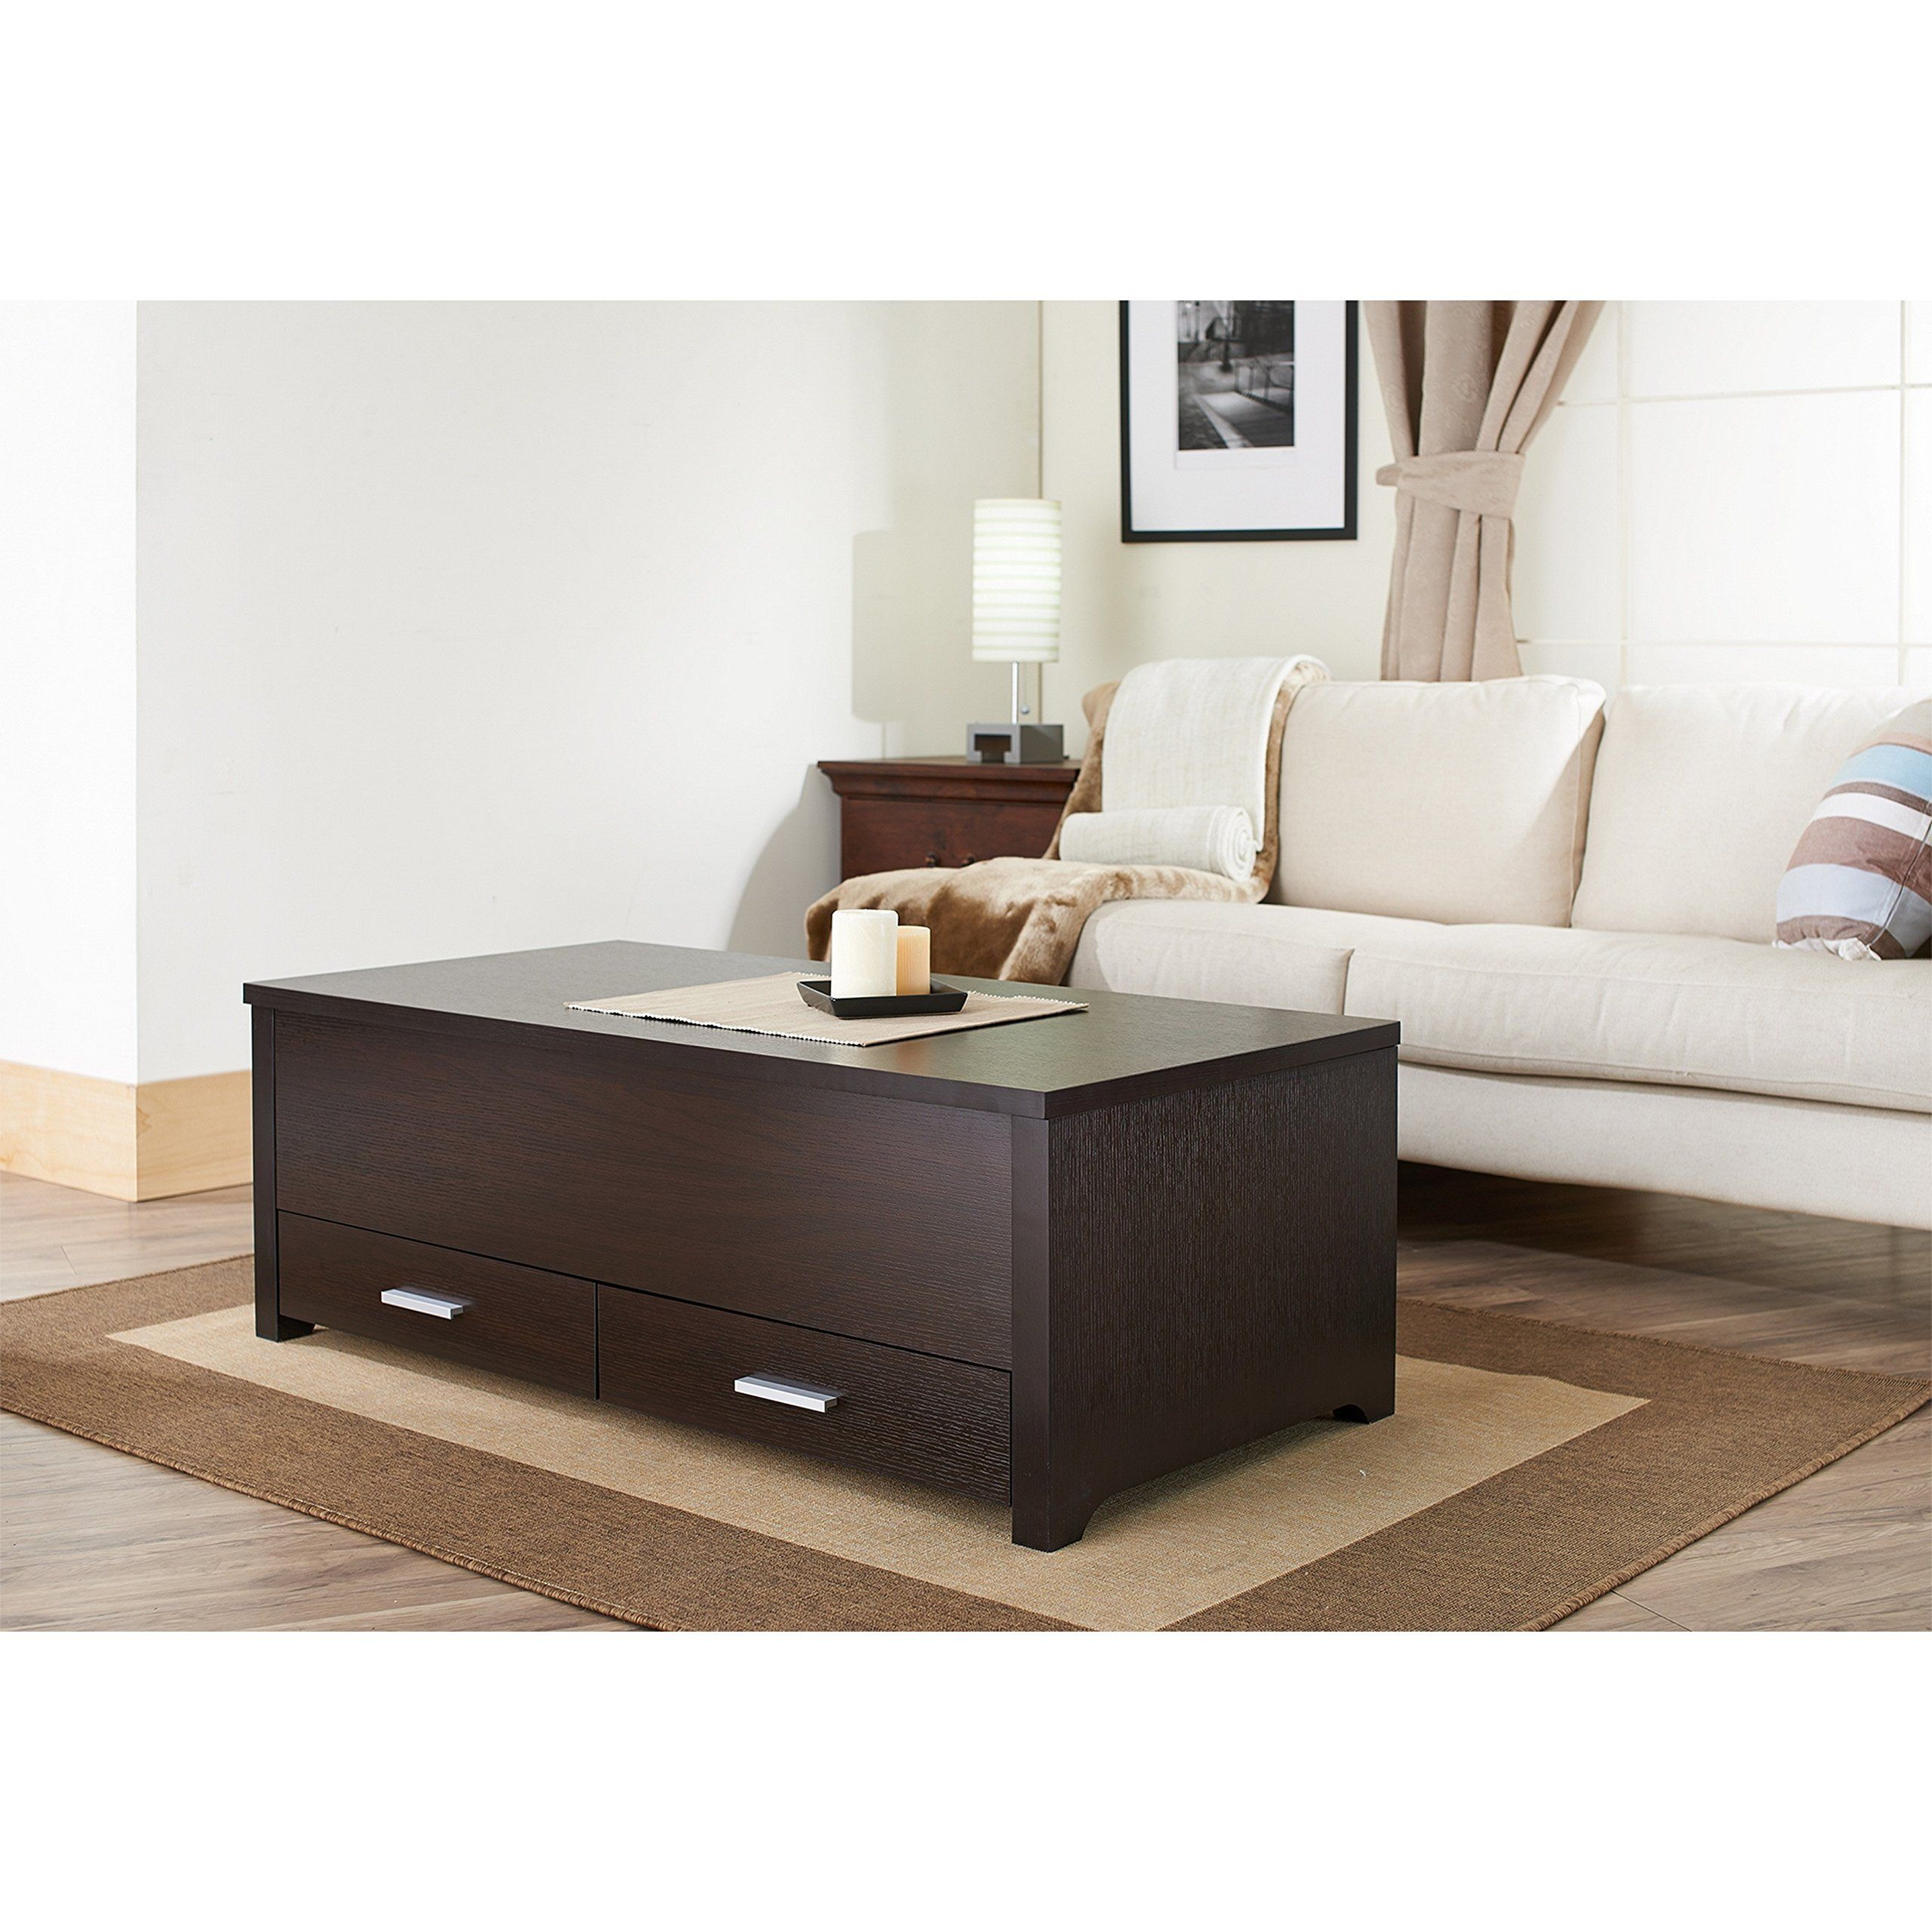 Dark Brown Storage Box Coffee Table With One Divided Slide Top Compartment Andamp Two Storage Drawers With Chrome Brush In 2020 Furniture Deals Furniture Coffee Table #storage #box #for #living #room